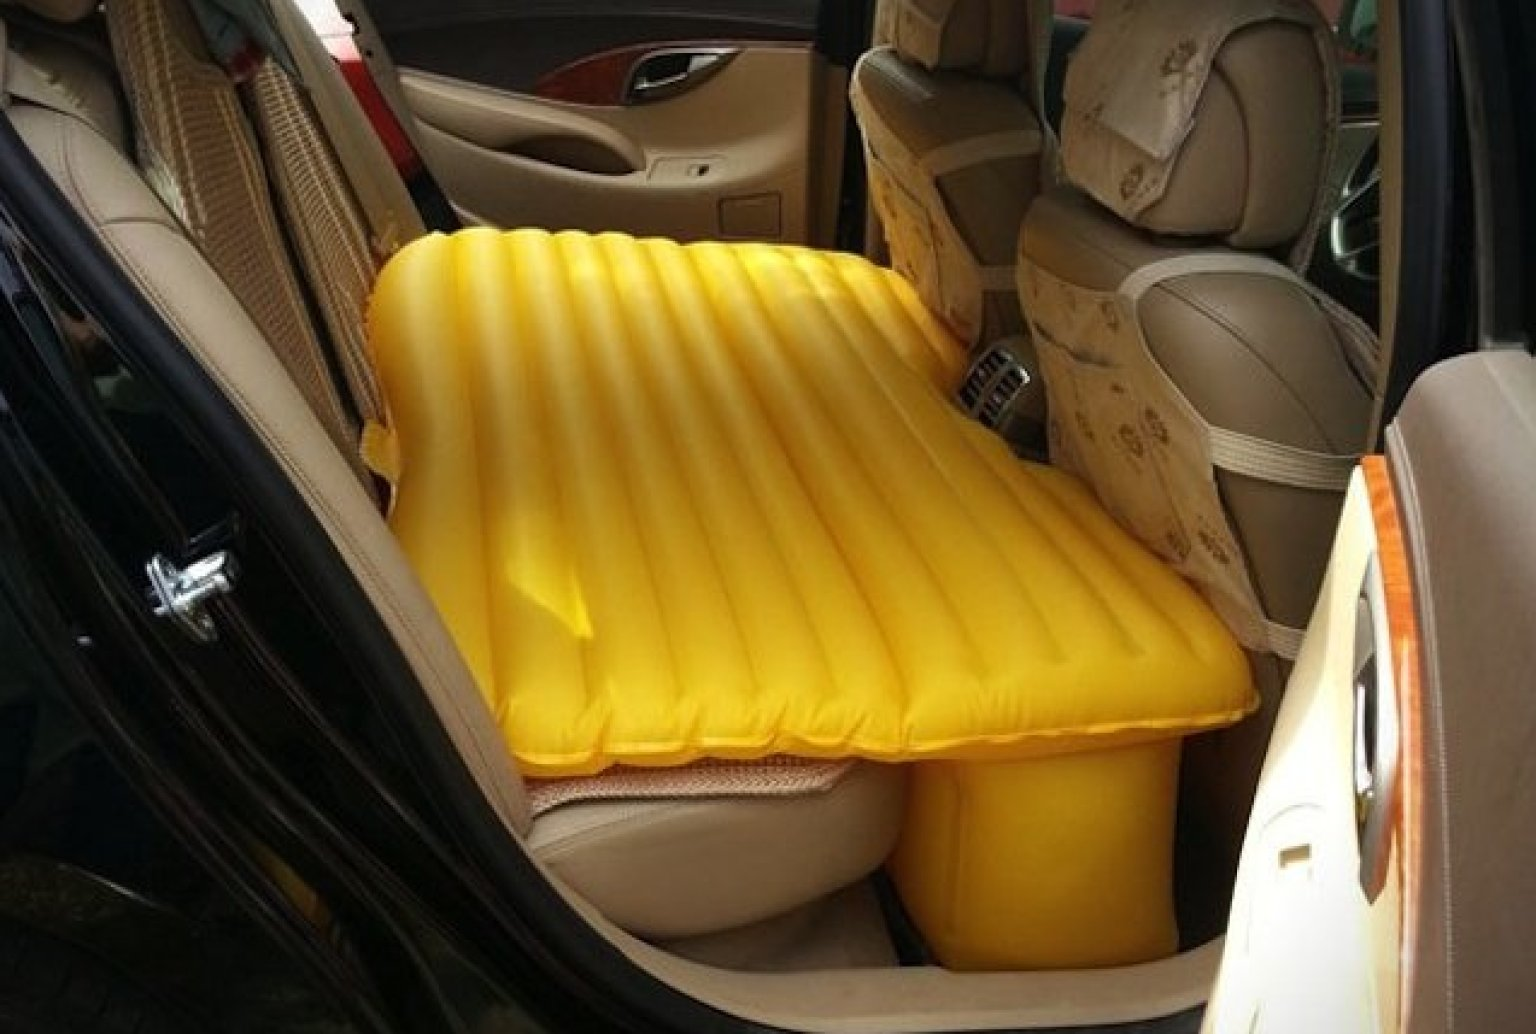 Fuloon Inflatable Car Mattress Turns Backseat Into Full Sized Bed